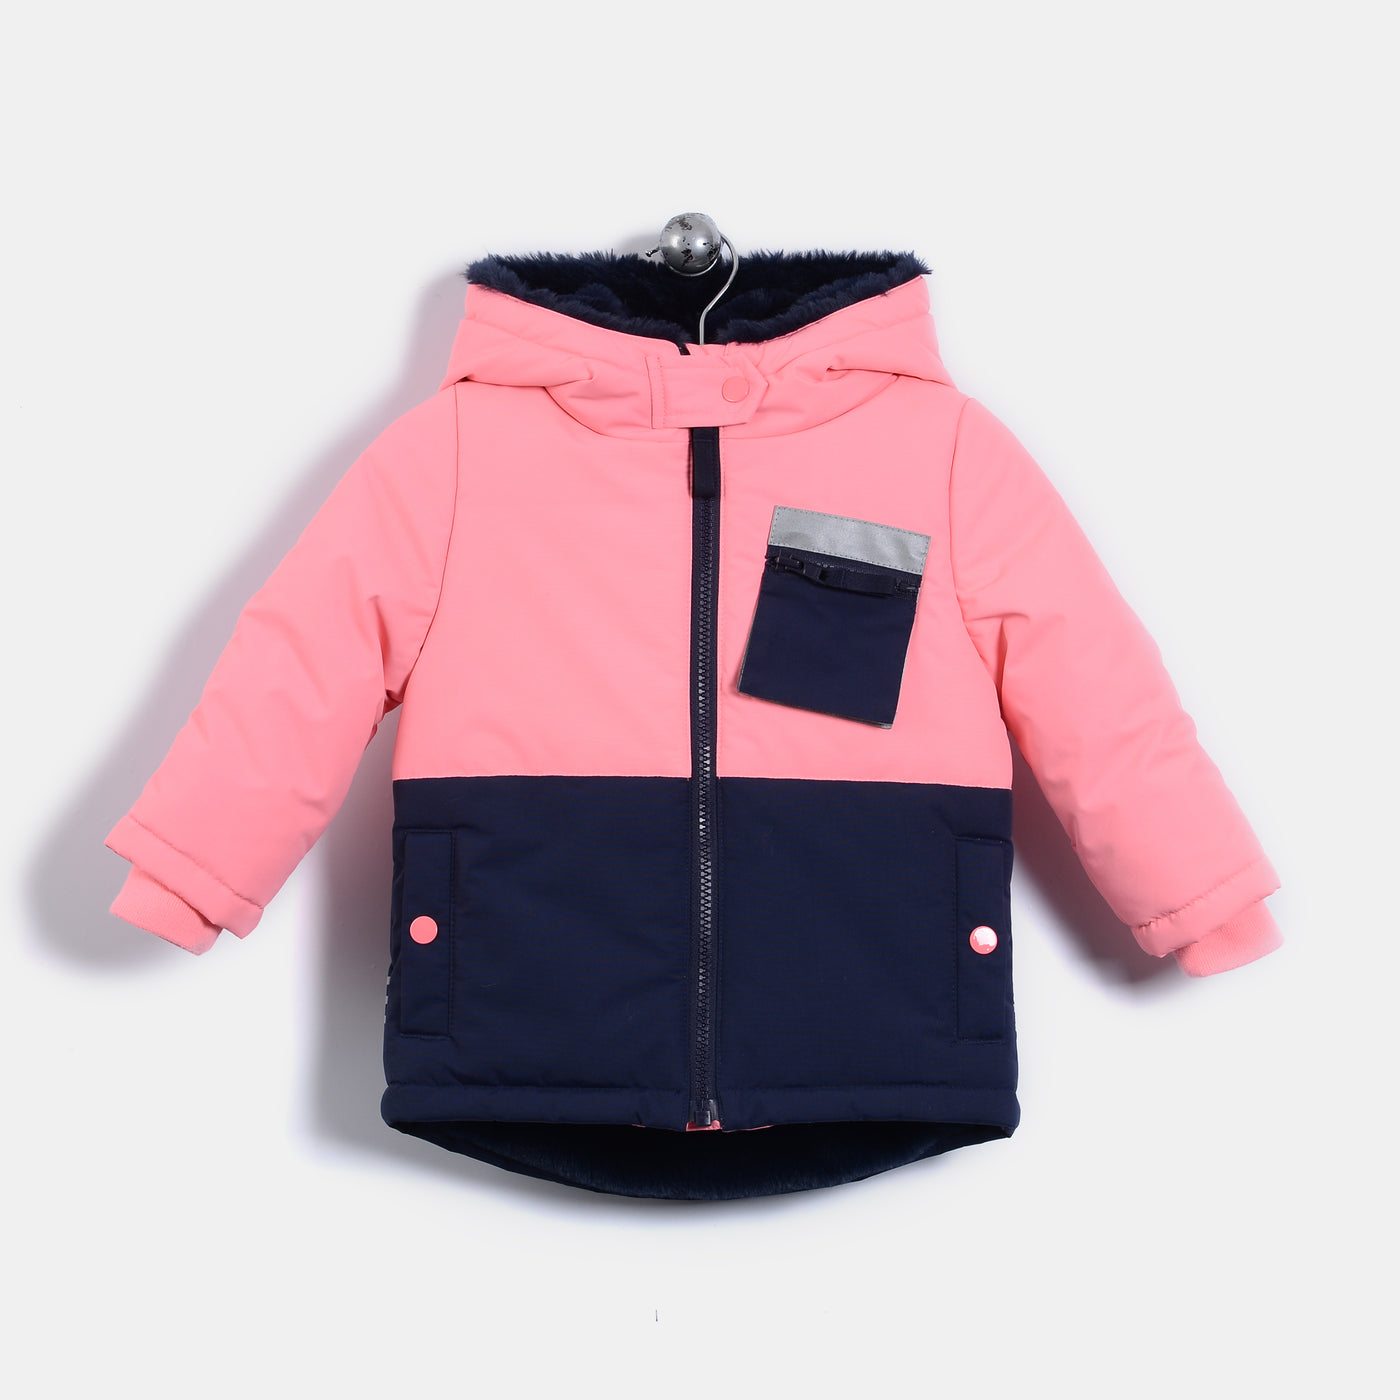 L-KITTY - Reflective Cat Jacket - Pink - Kids